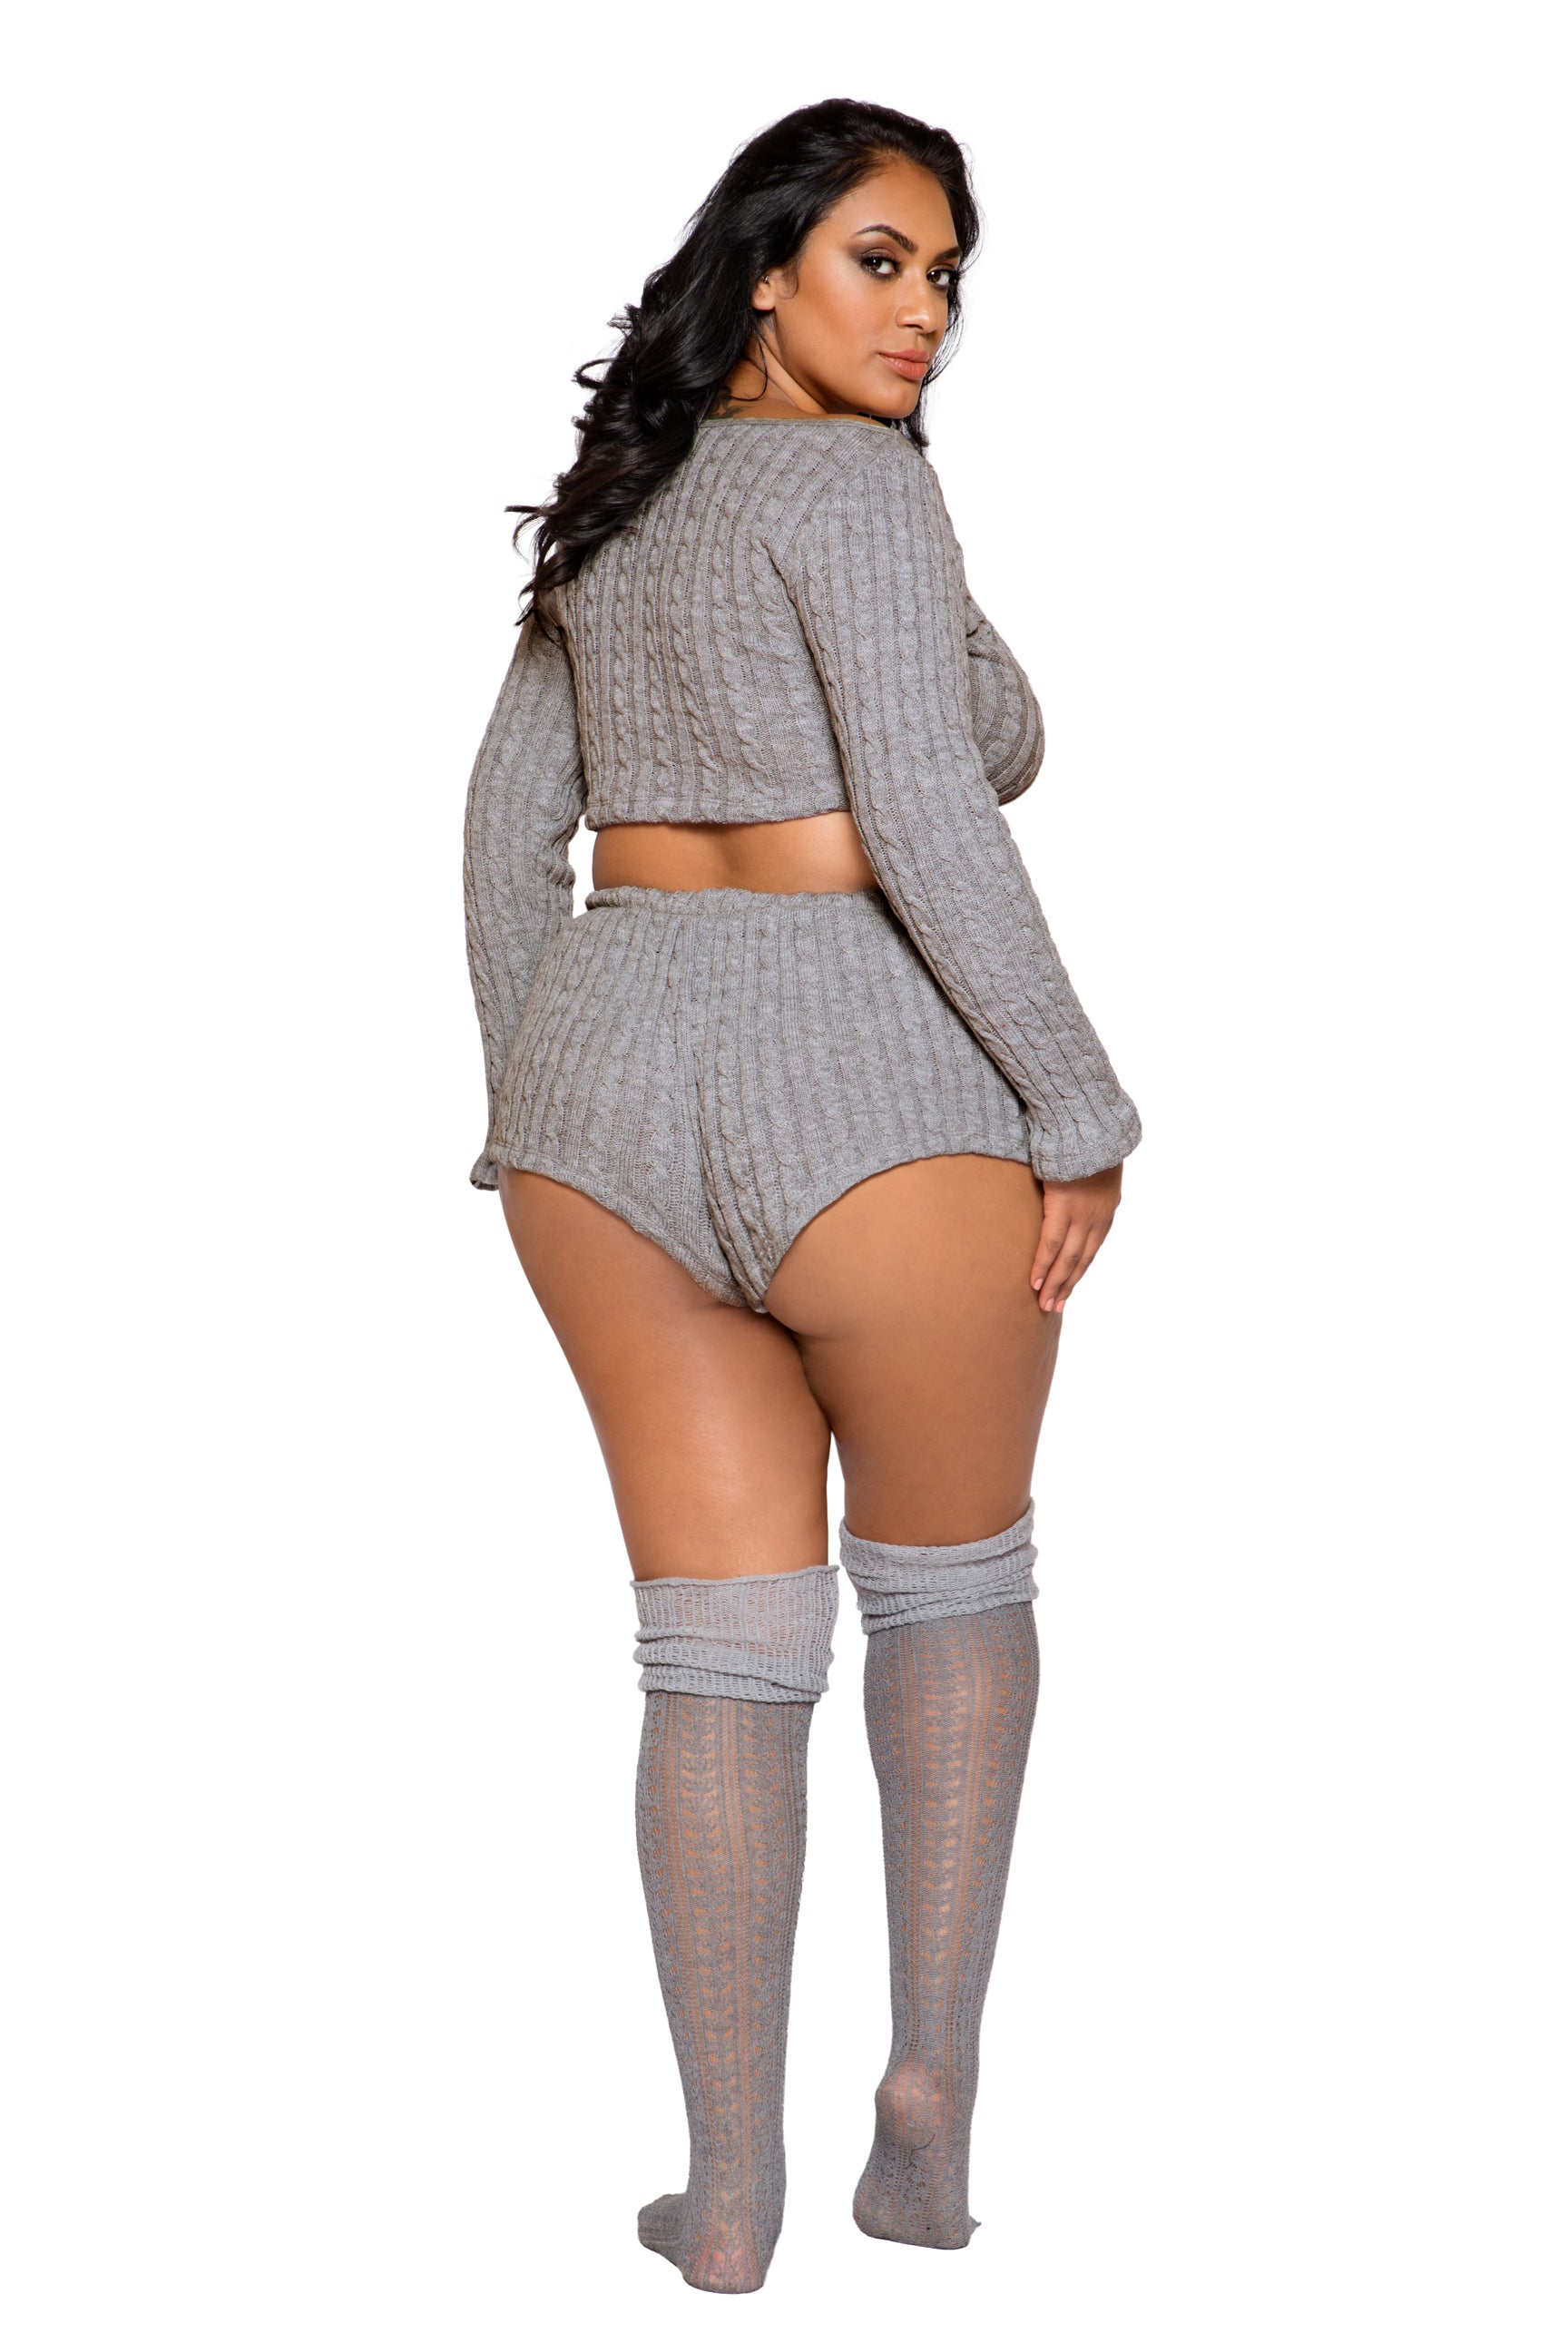 LI287 Roma Confidential Wholesale Plus Size Lingerie Grey Cozy and Comfy Pajama Short Set